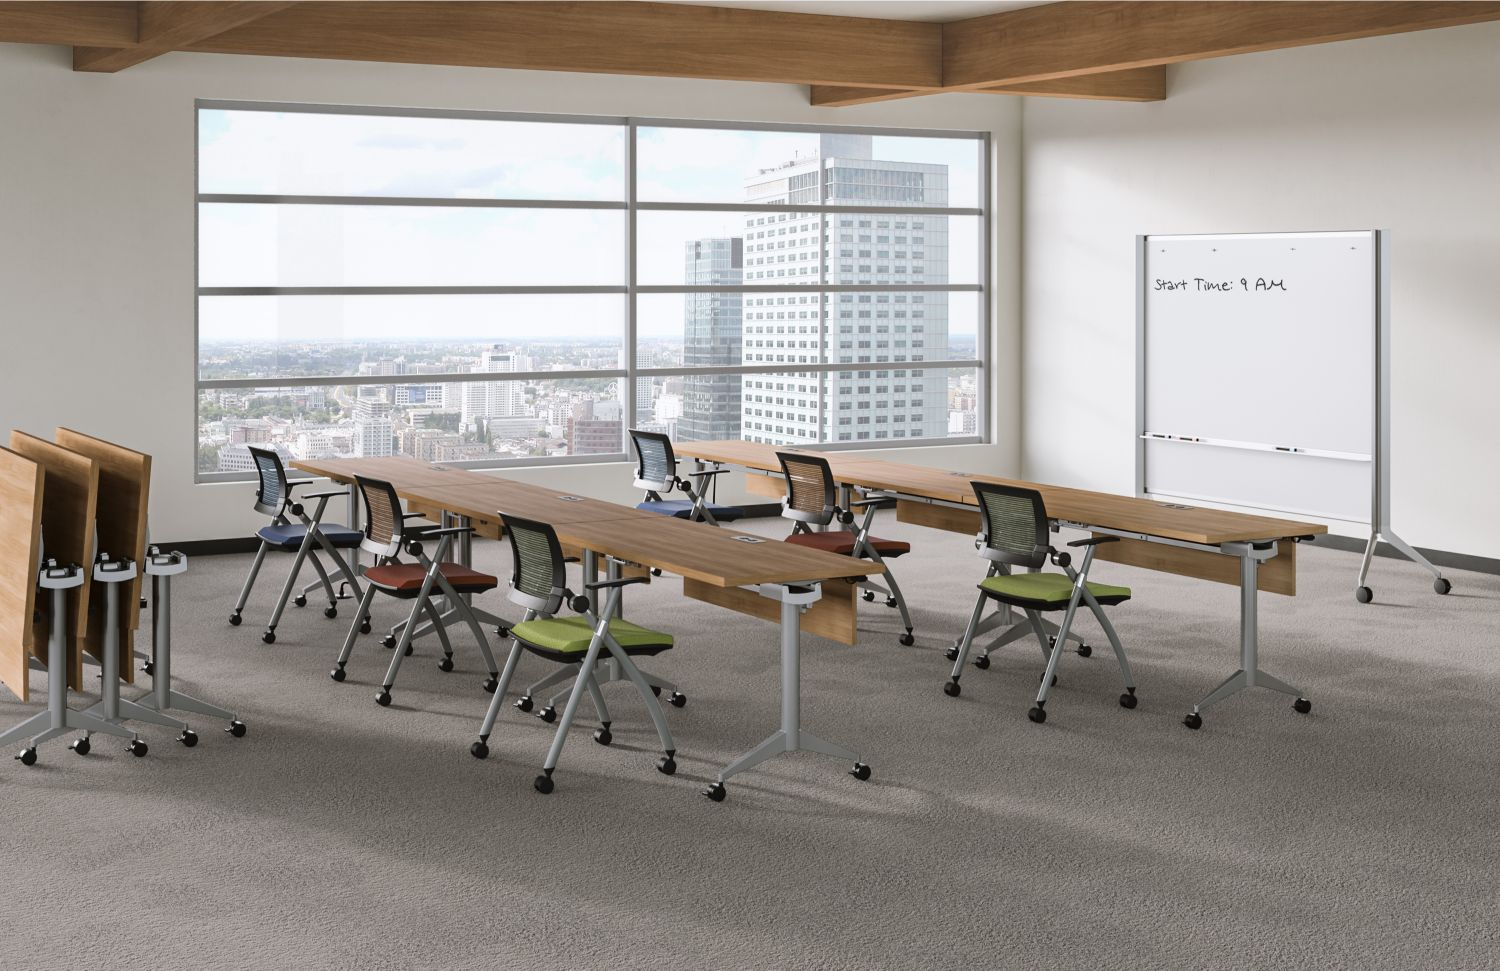 day-to-day-training-room-with-flip-top-tables-and-stow-seating_md